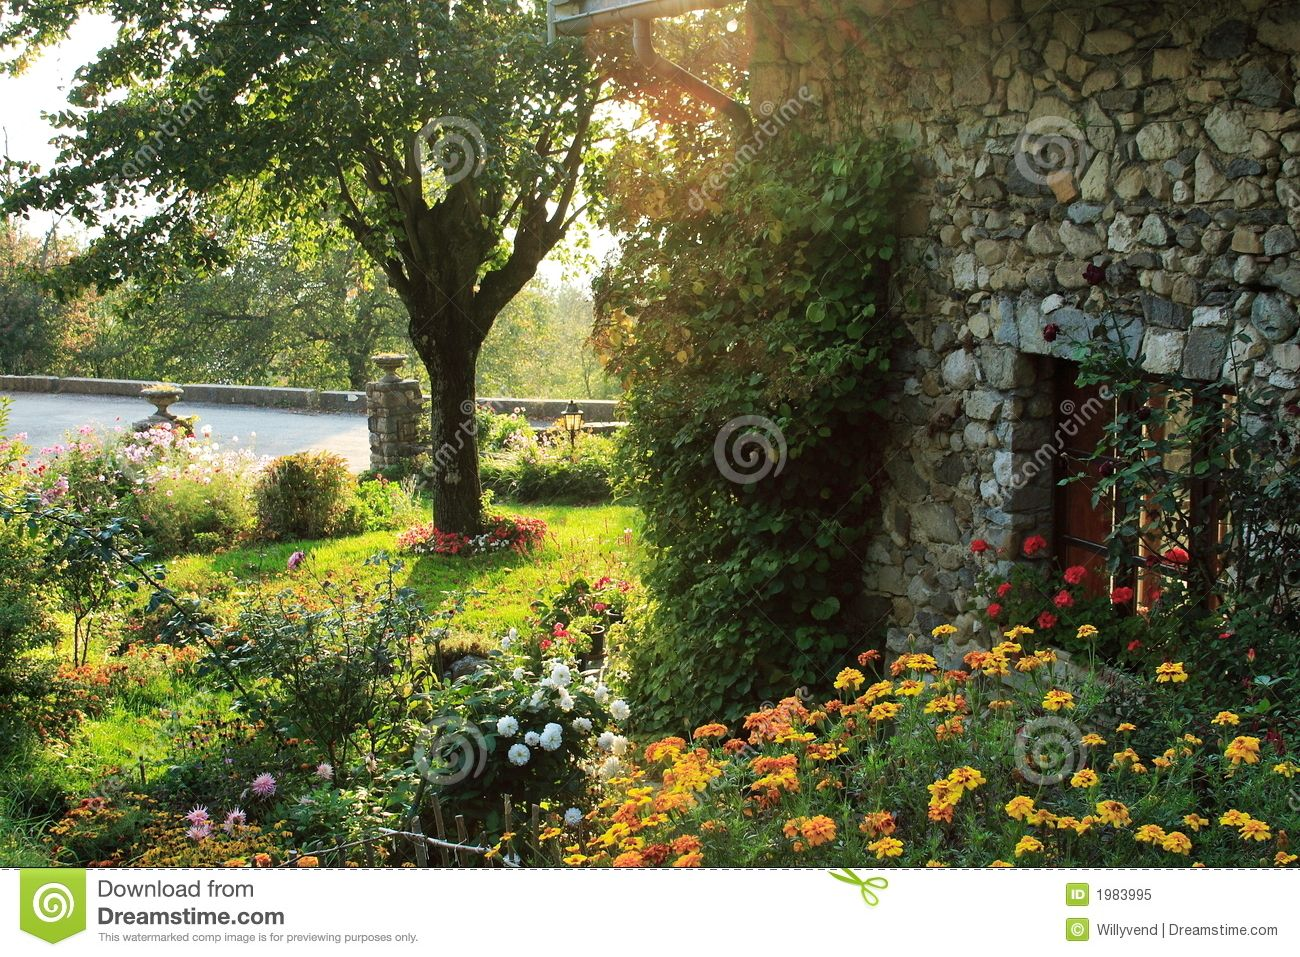 French Countryside Google Search Paris The City I Go To As - French country side